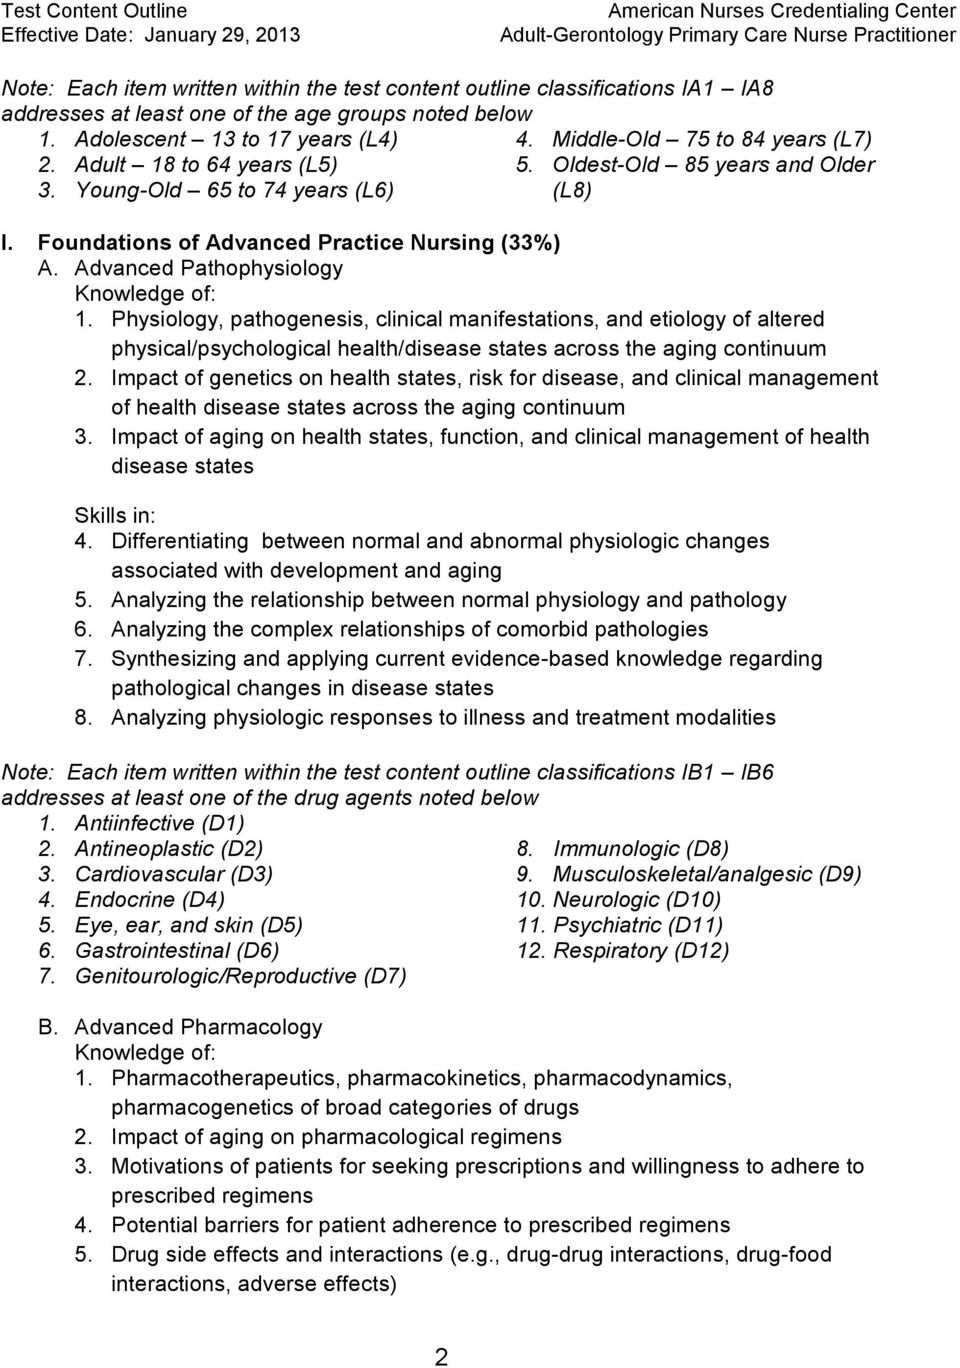 Advanced Pathophysiology 1. Physiology, pathogenesis, clinical manifestations, and etiology of altered physical/psychological health/disease states across the aging continuum 2.